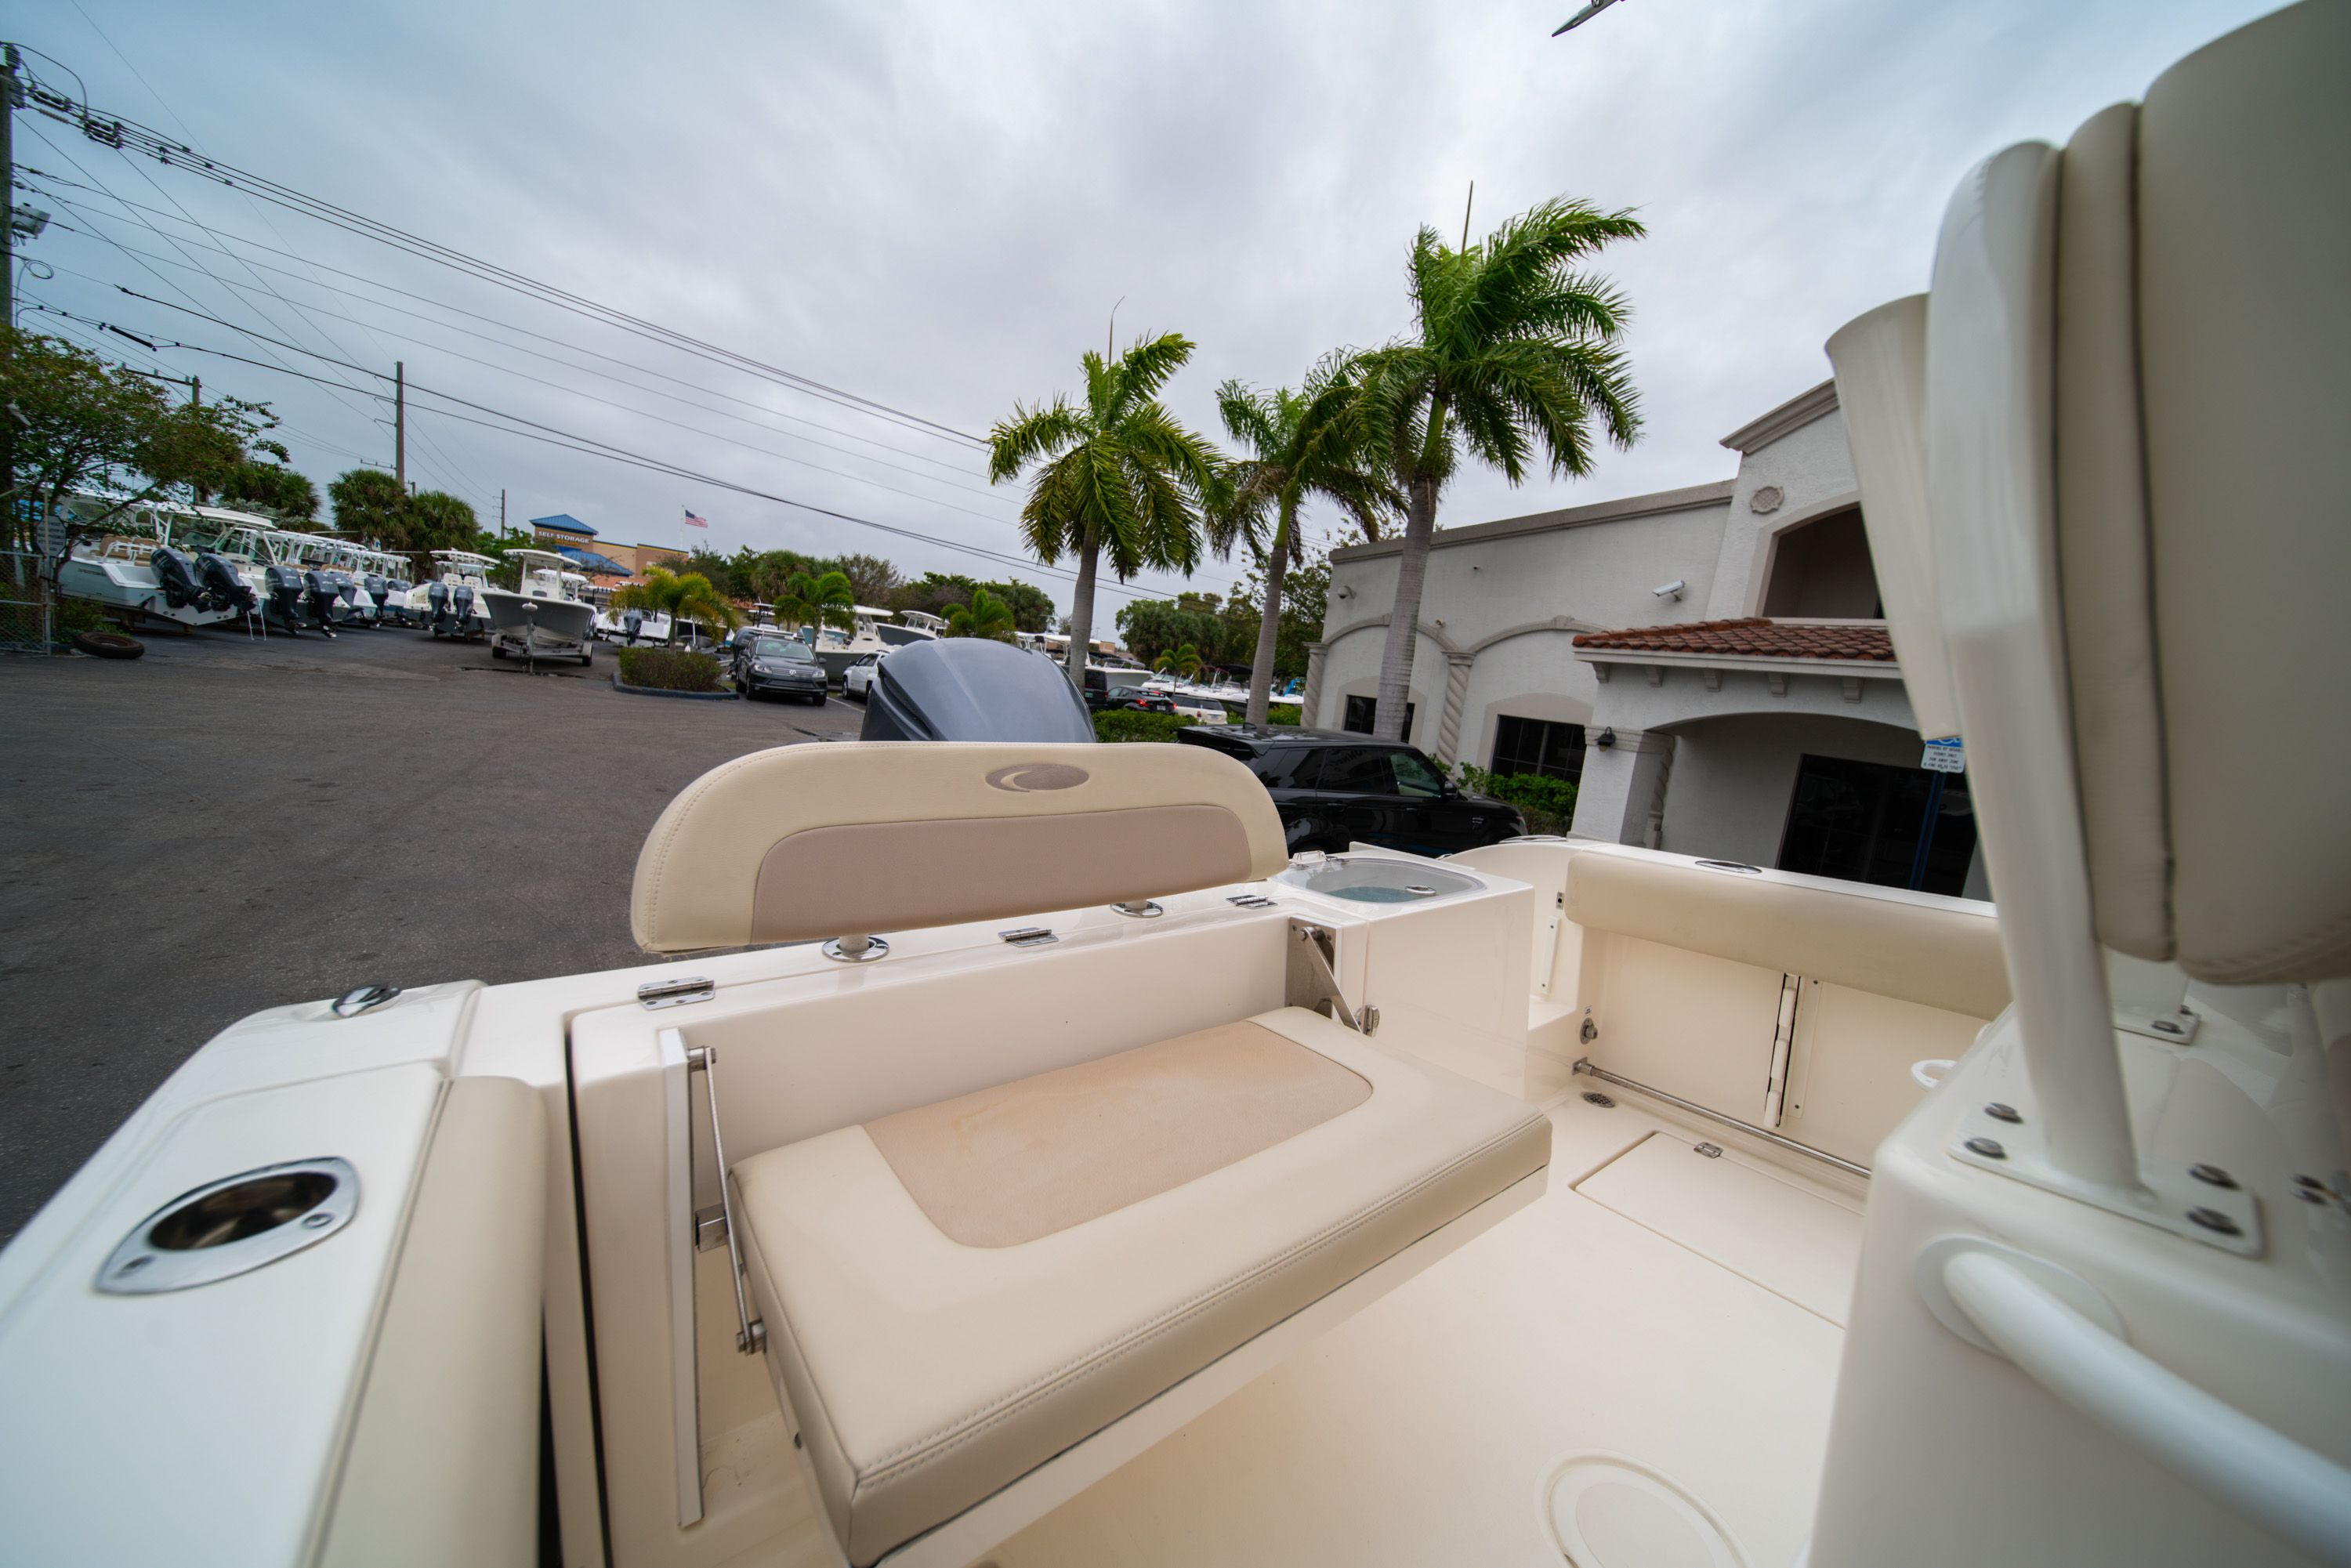 Thumbnail 10 for Used 2016 Cobia 237 Center Console boat for sale in West Palm Beach, FL